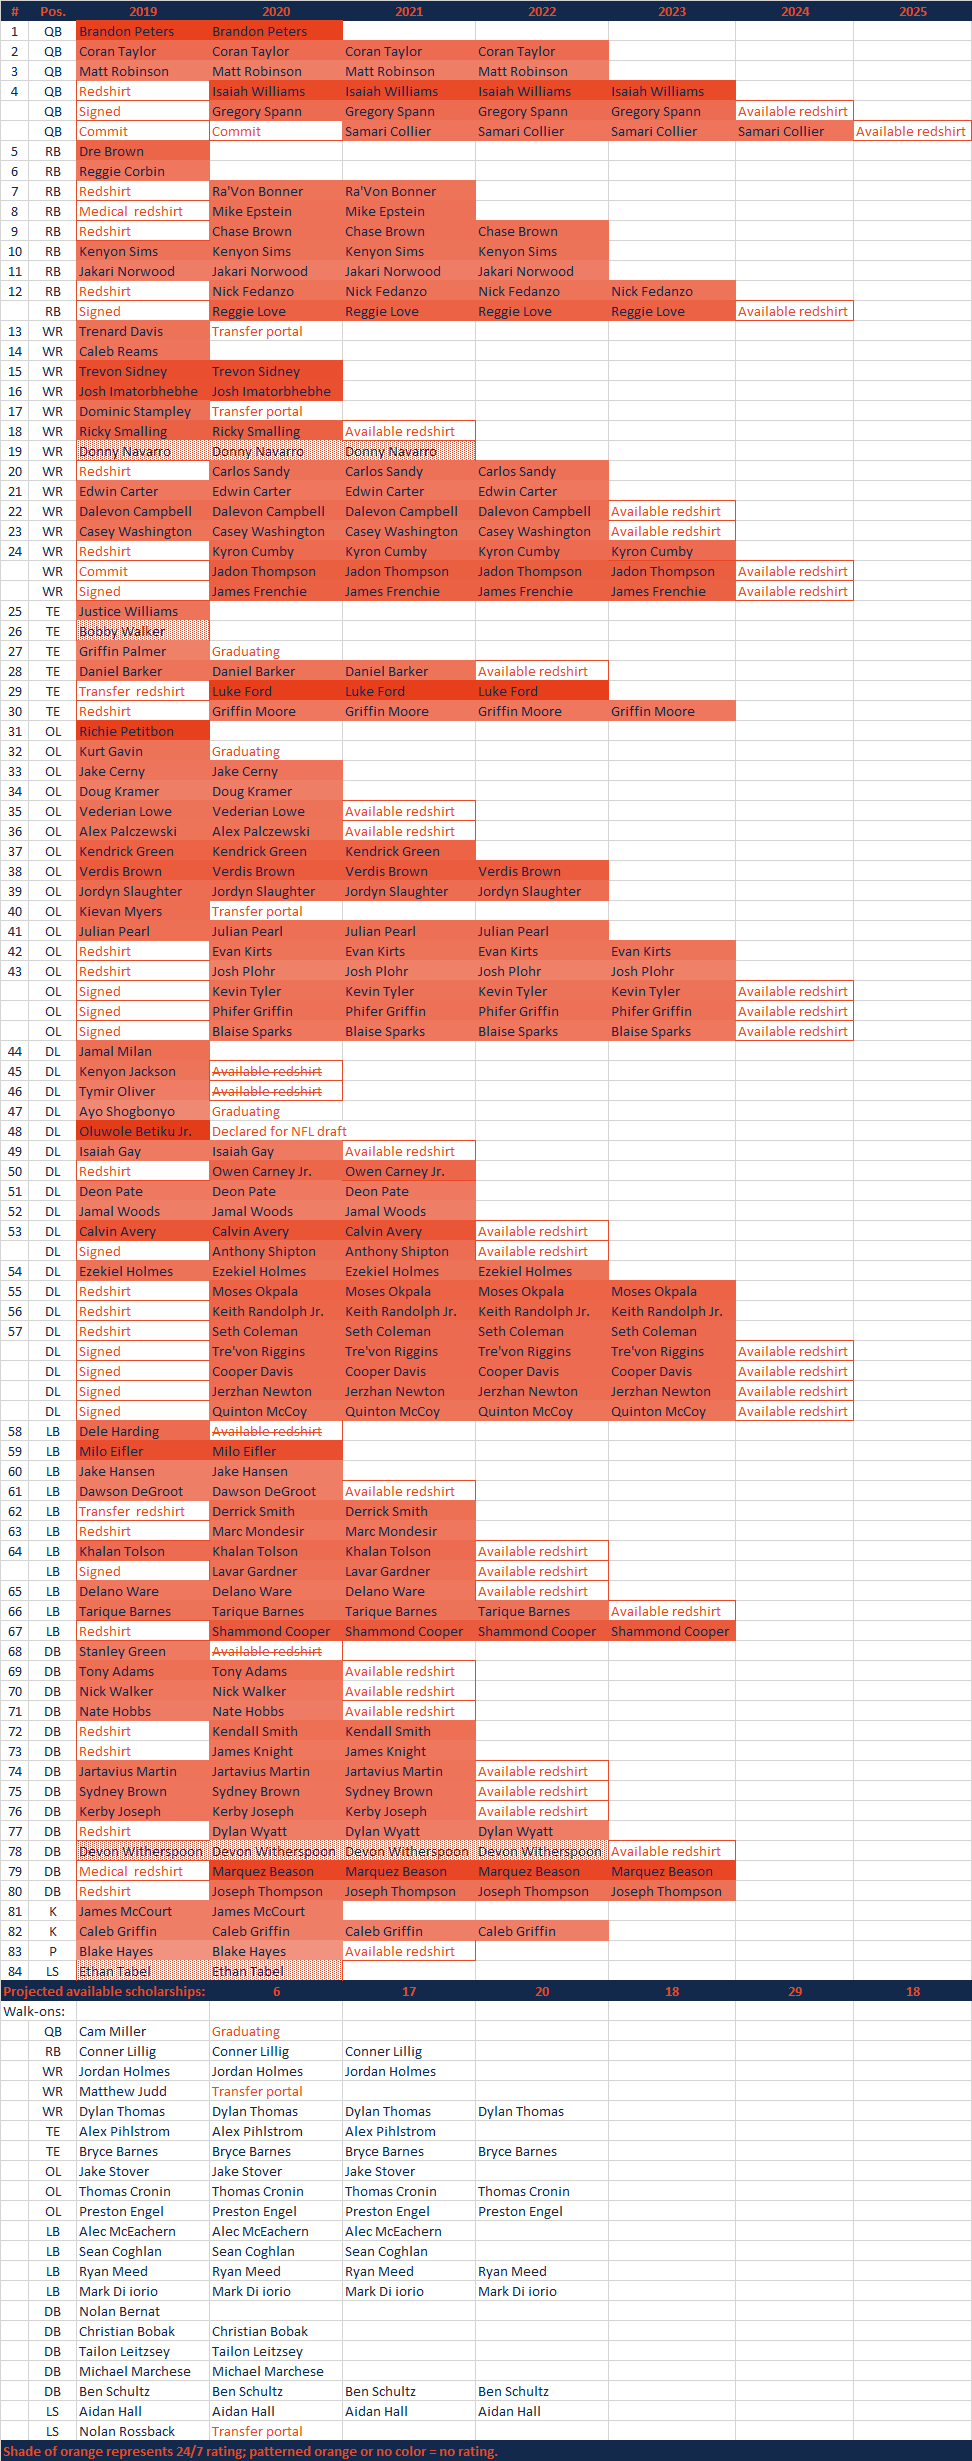 2019ScholarshipGrid.png